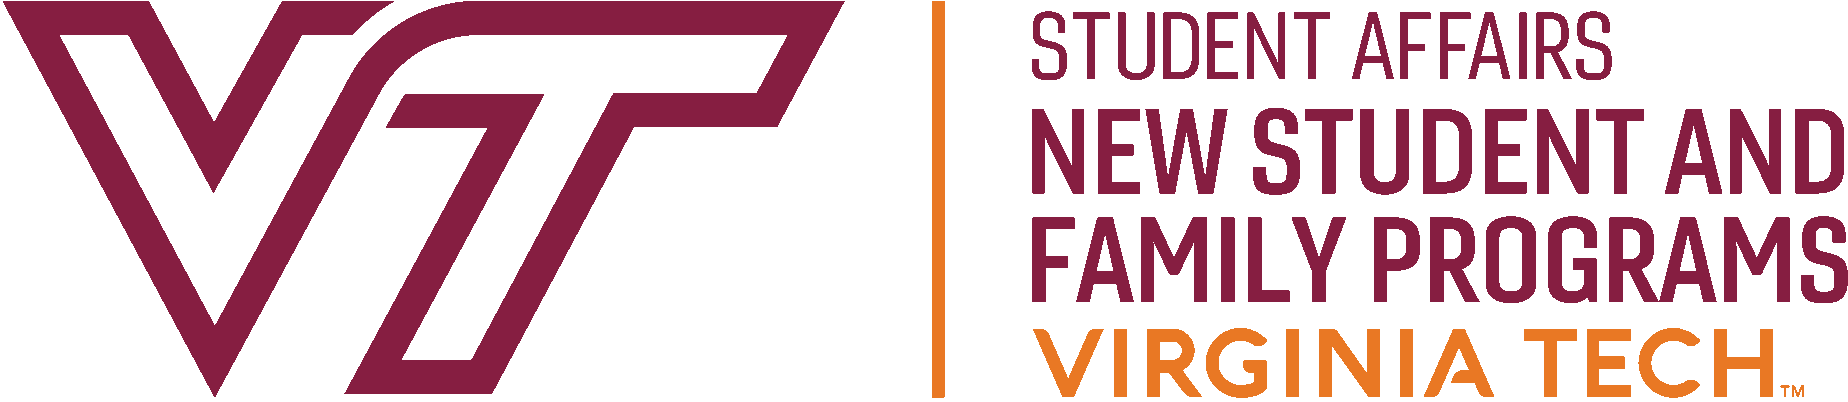 VT new student and family programs logo